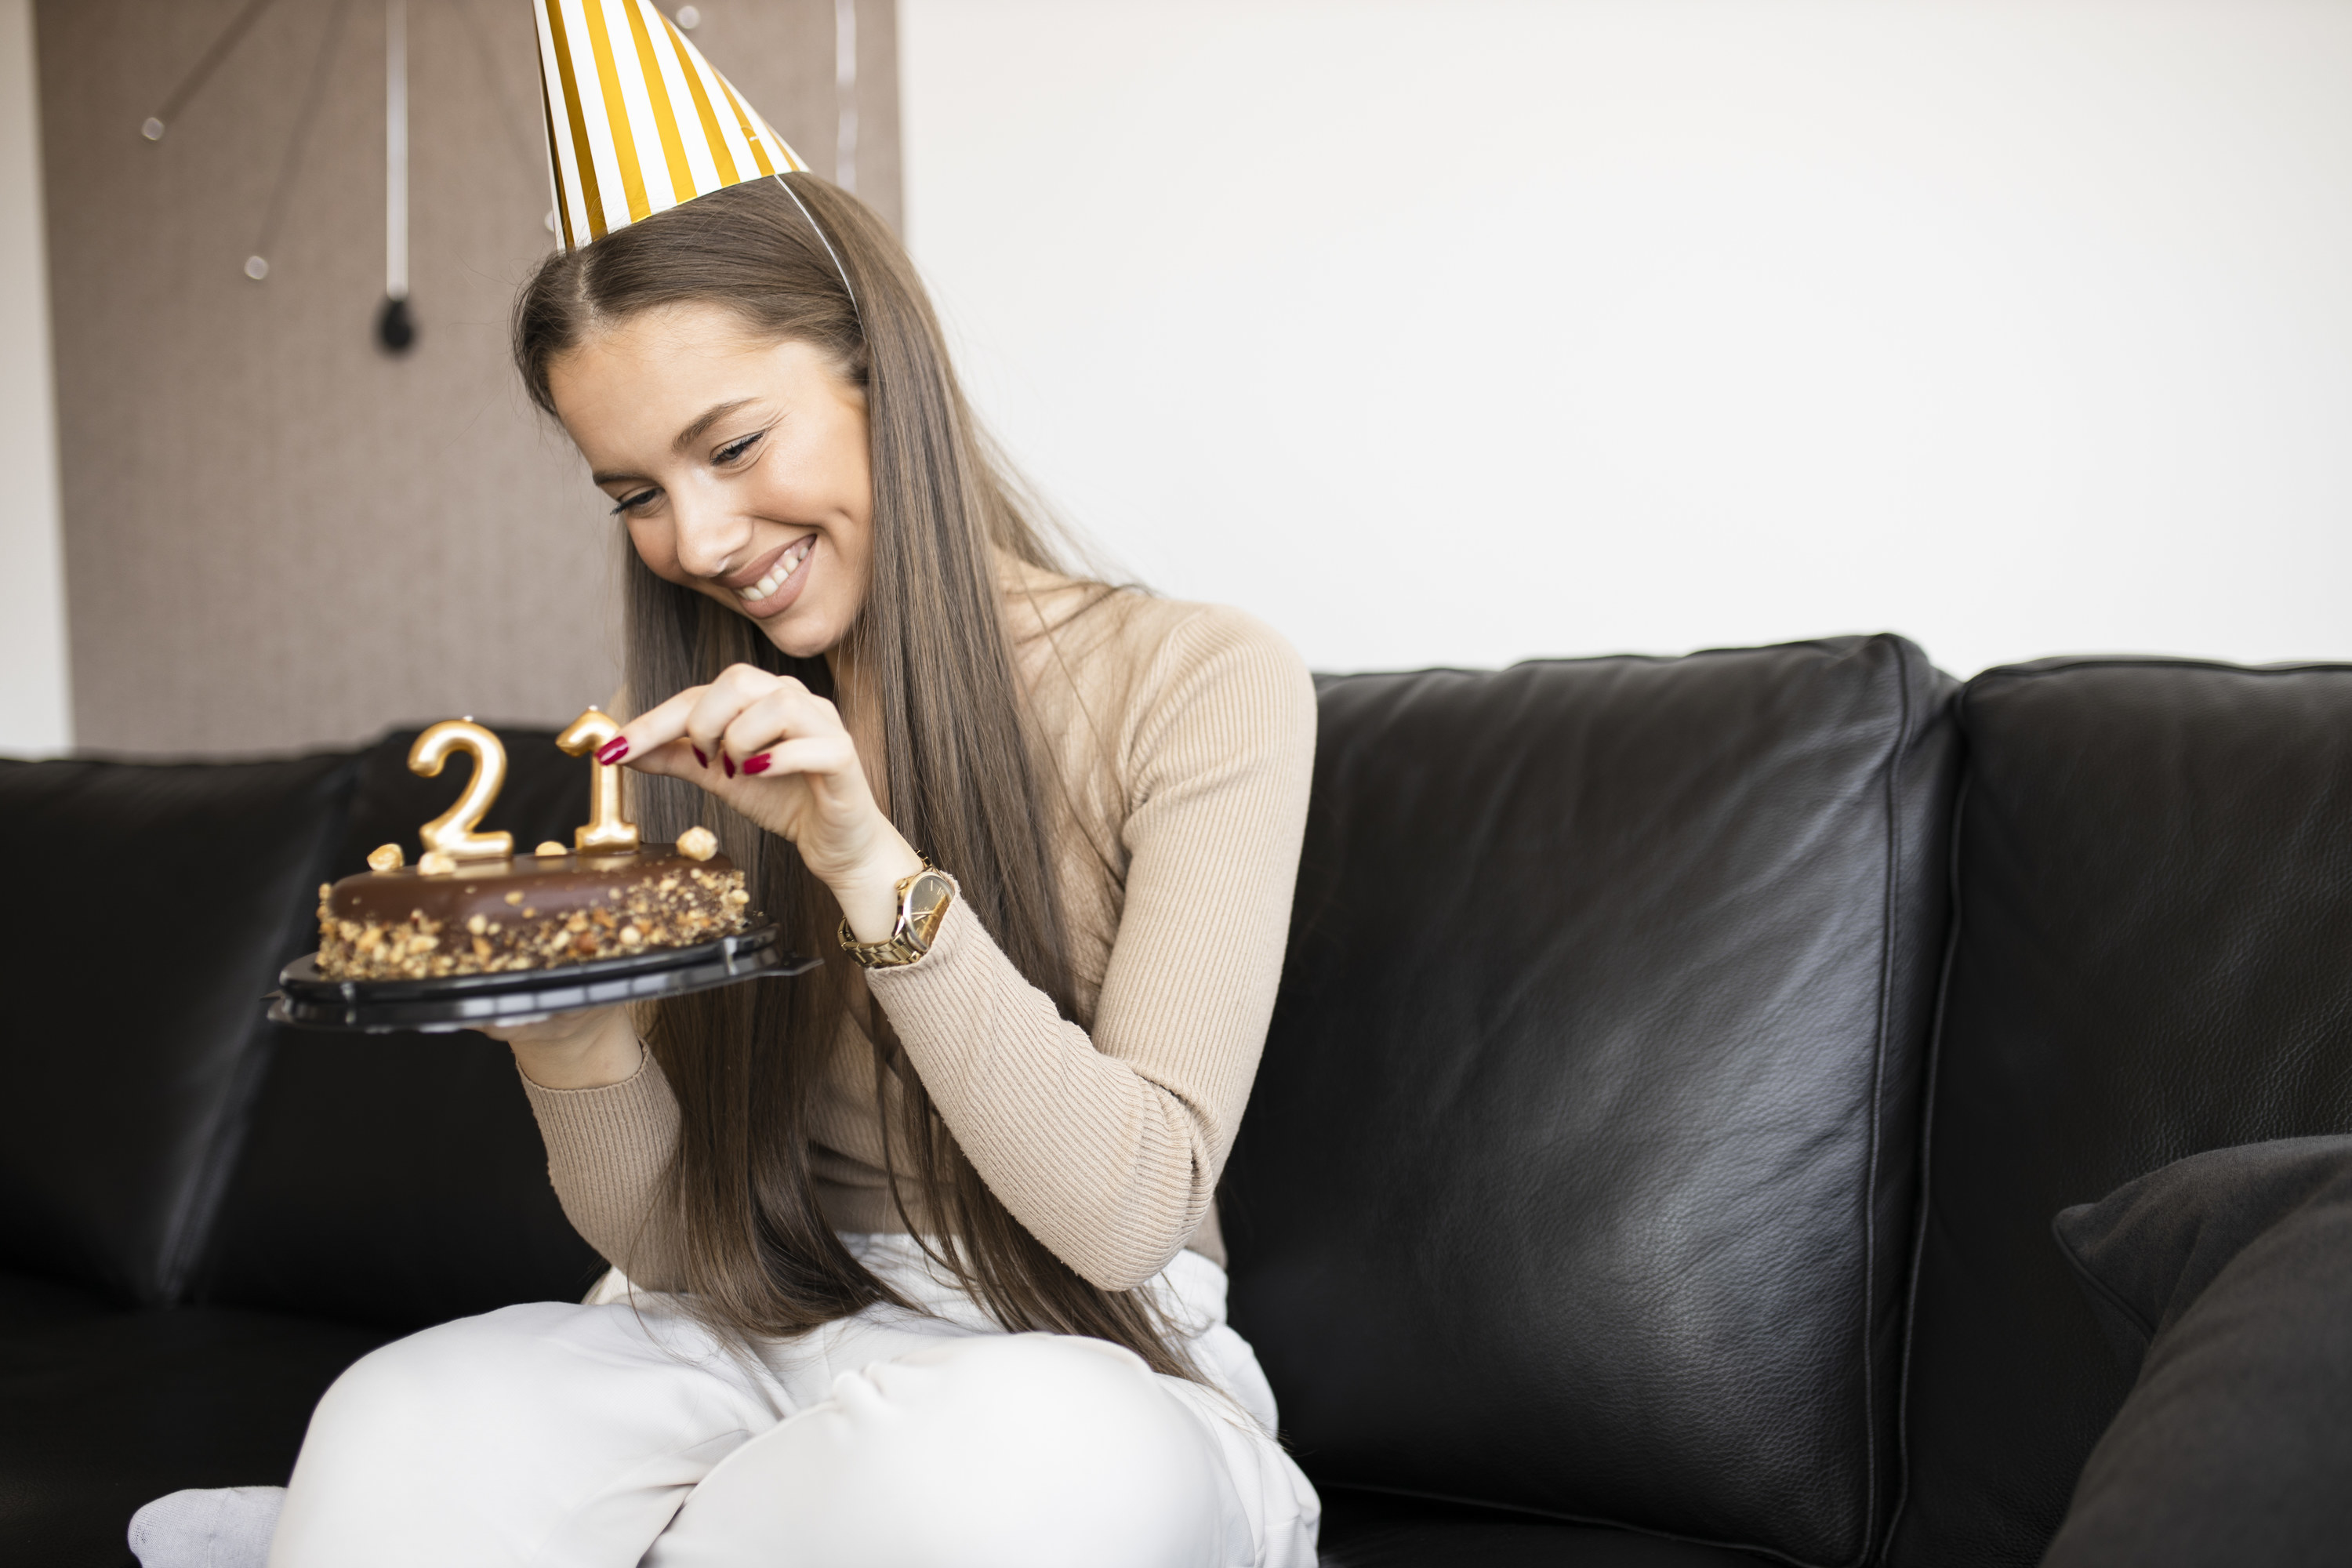 A person holding a cake to celebrate their 21st birthday